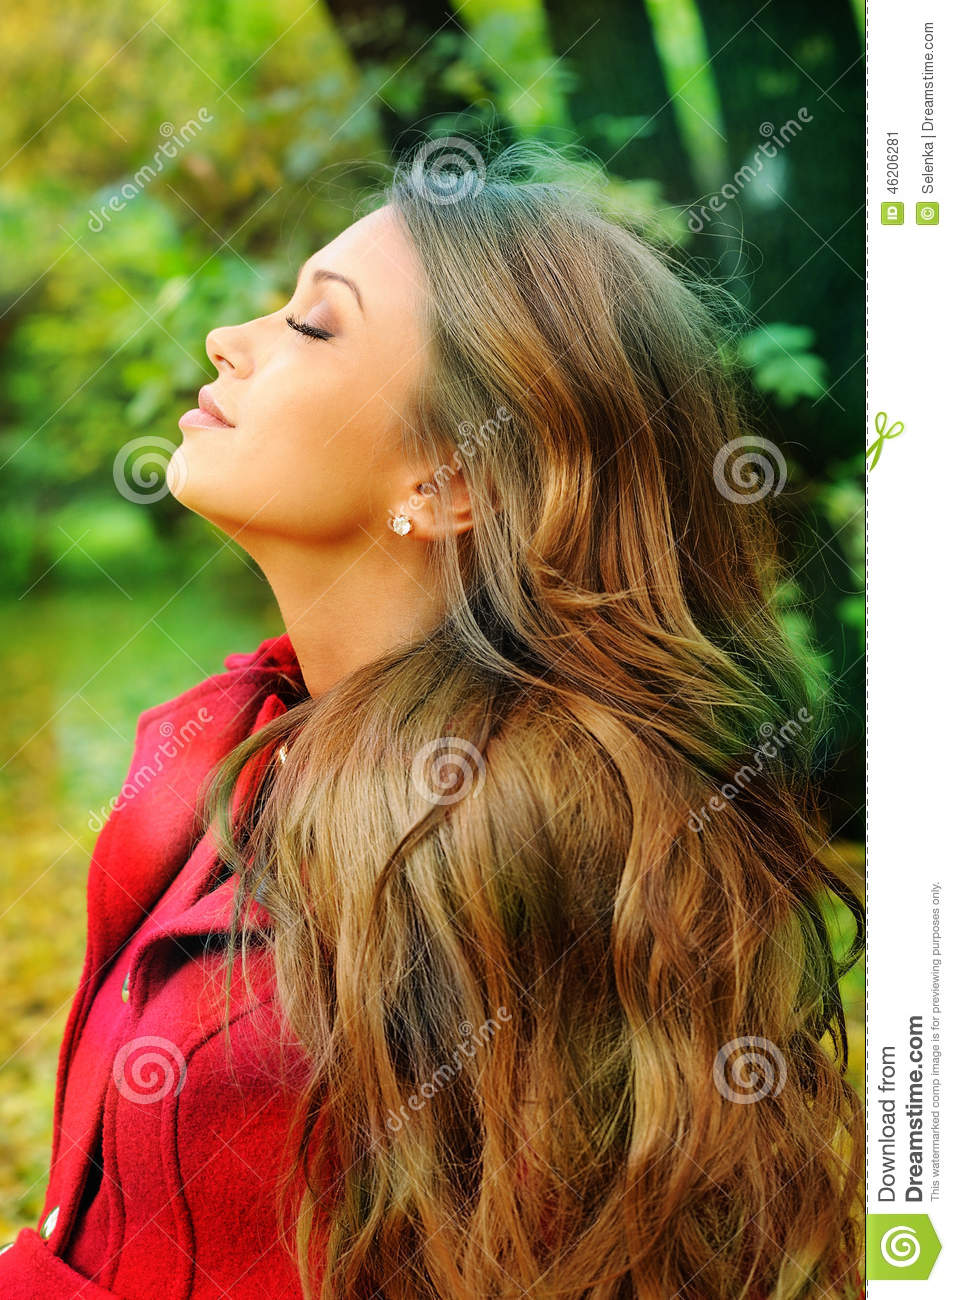 portrait in profile of a young beautiful girl resting in a